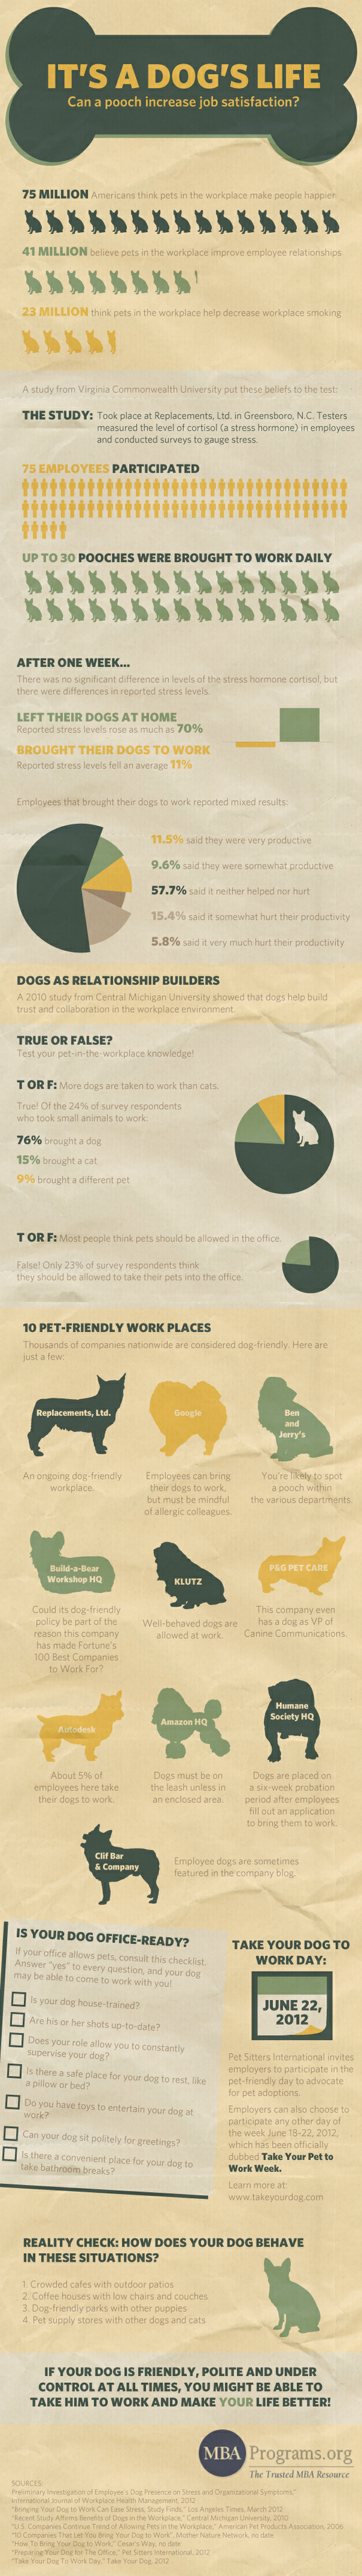 Dogs-at-work